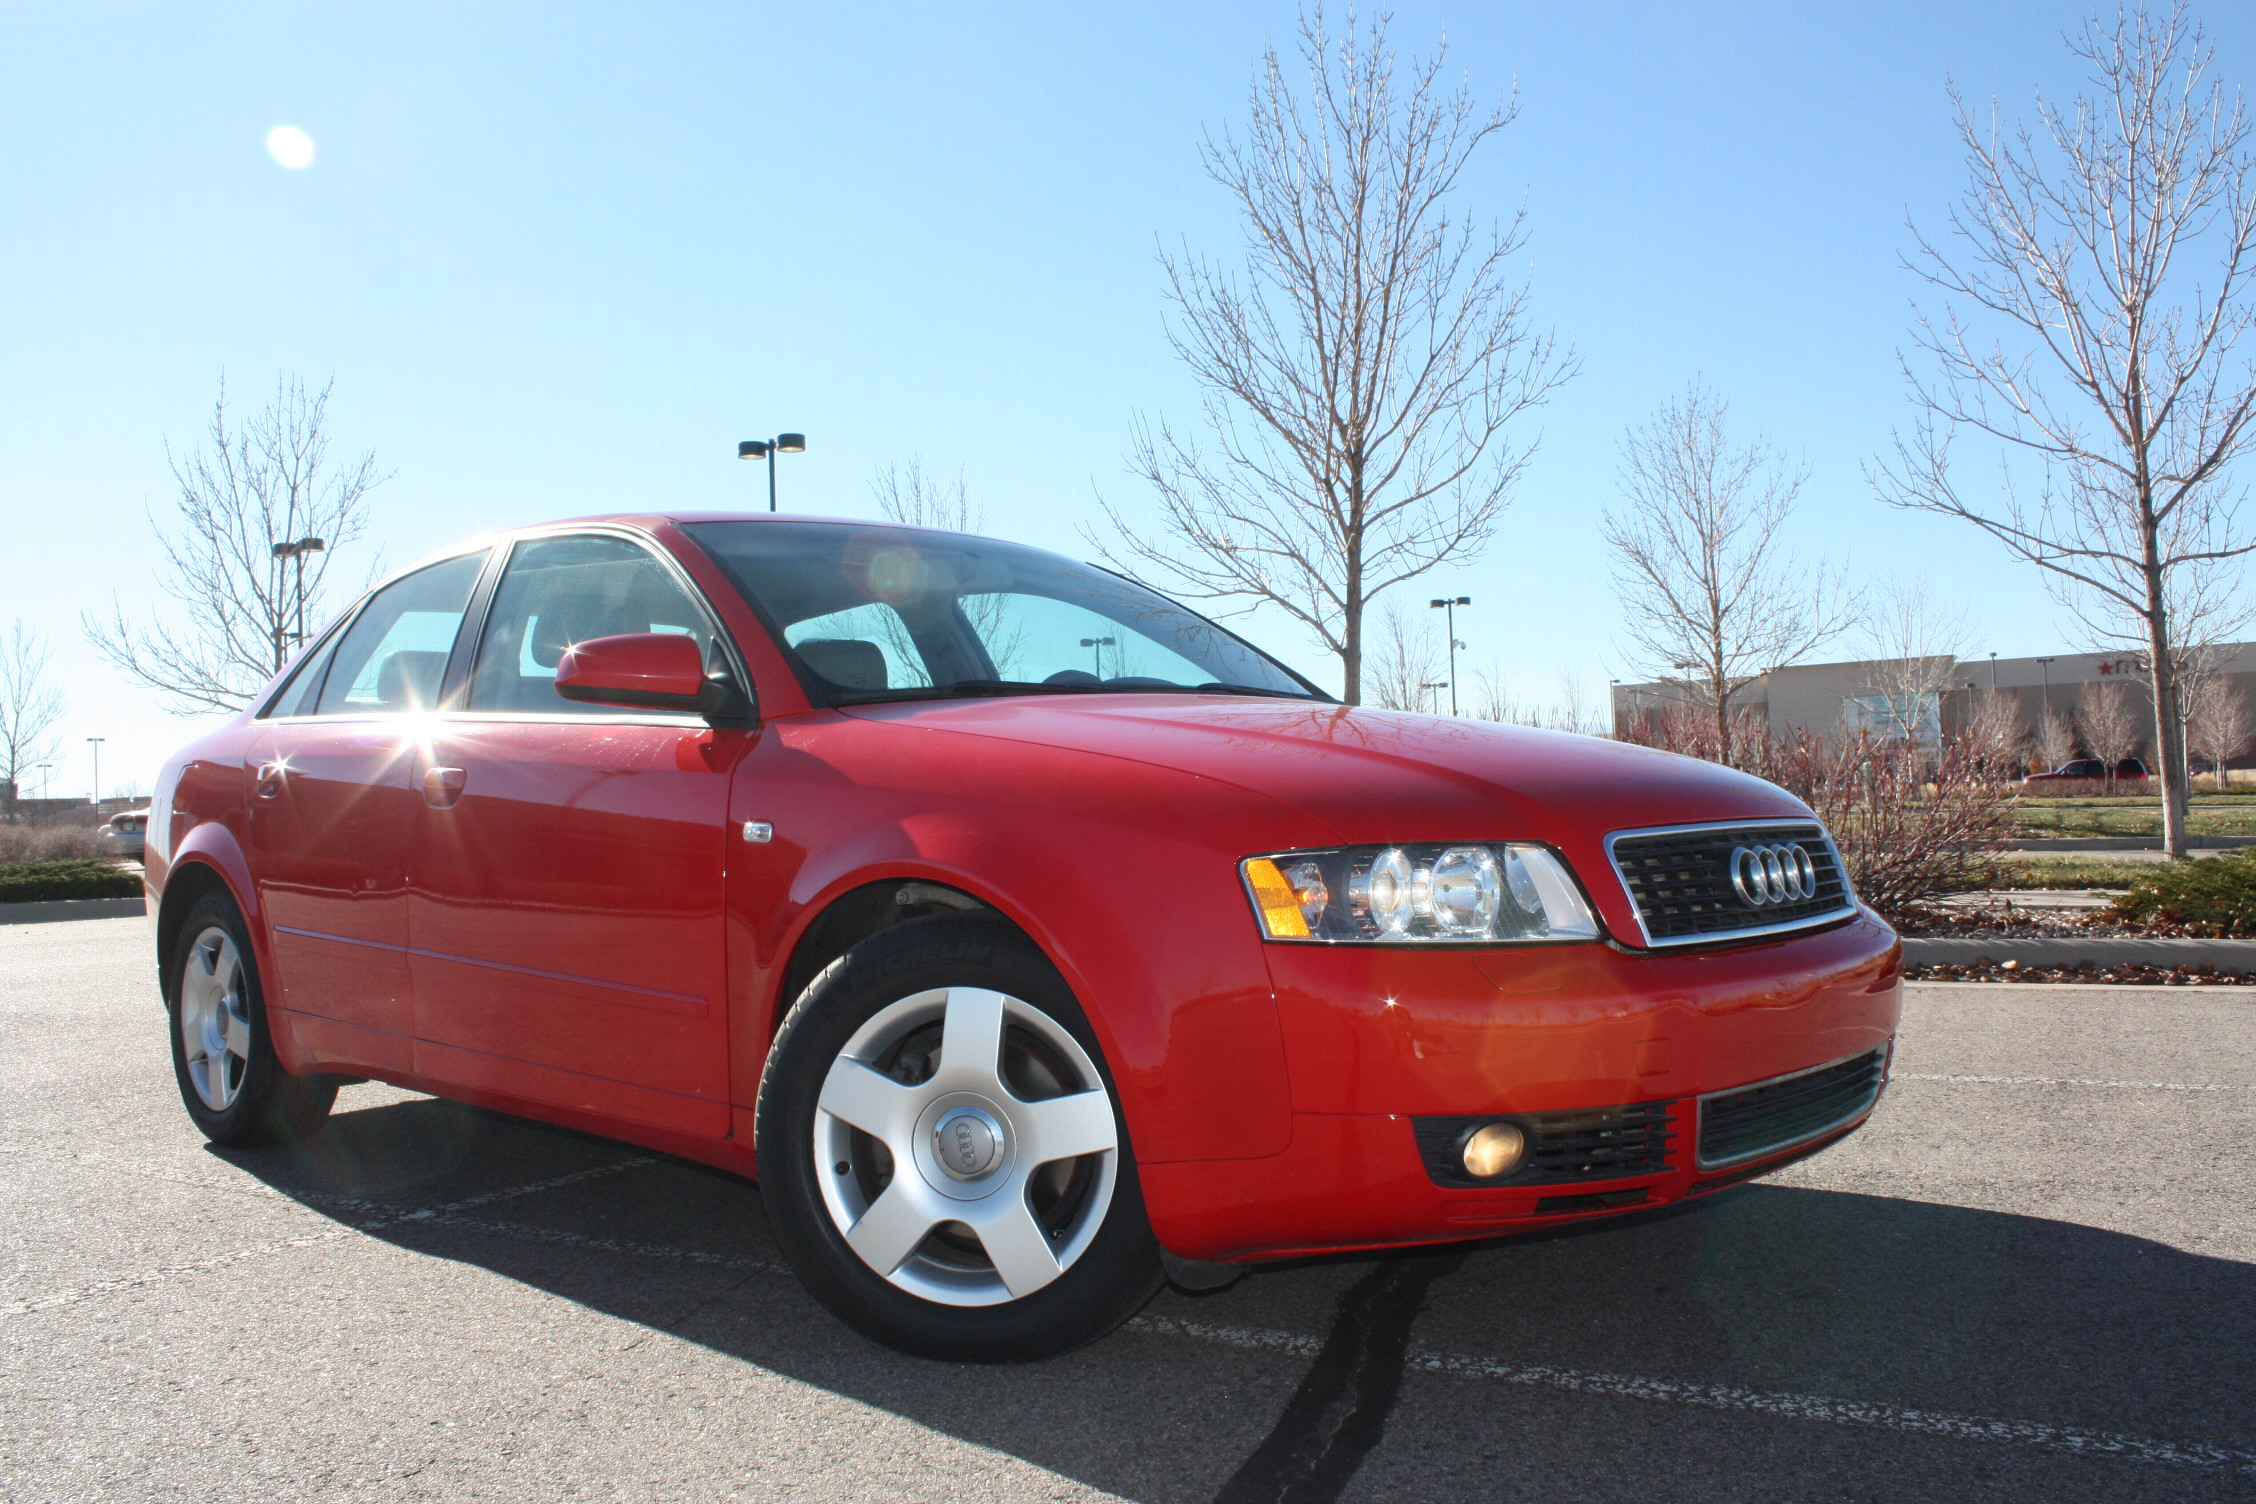 2005 audi a4 quattro all wheel drive for sale in denver 6 000 collision repair. Black Bedroom Furniture Sets. Home Design Ideas